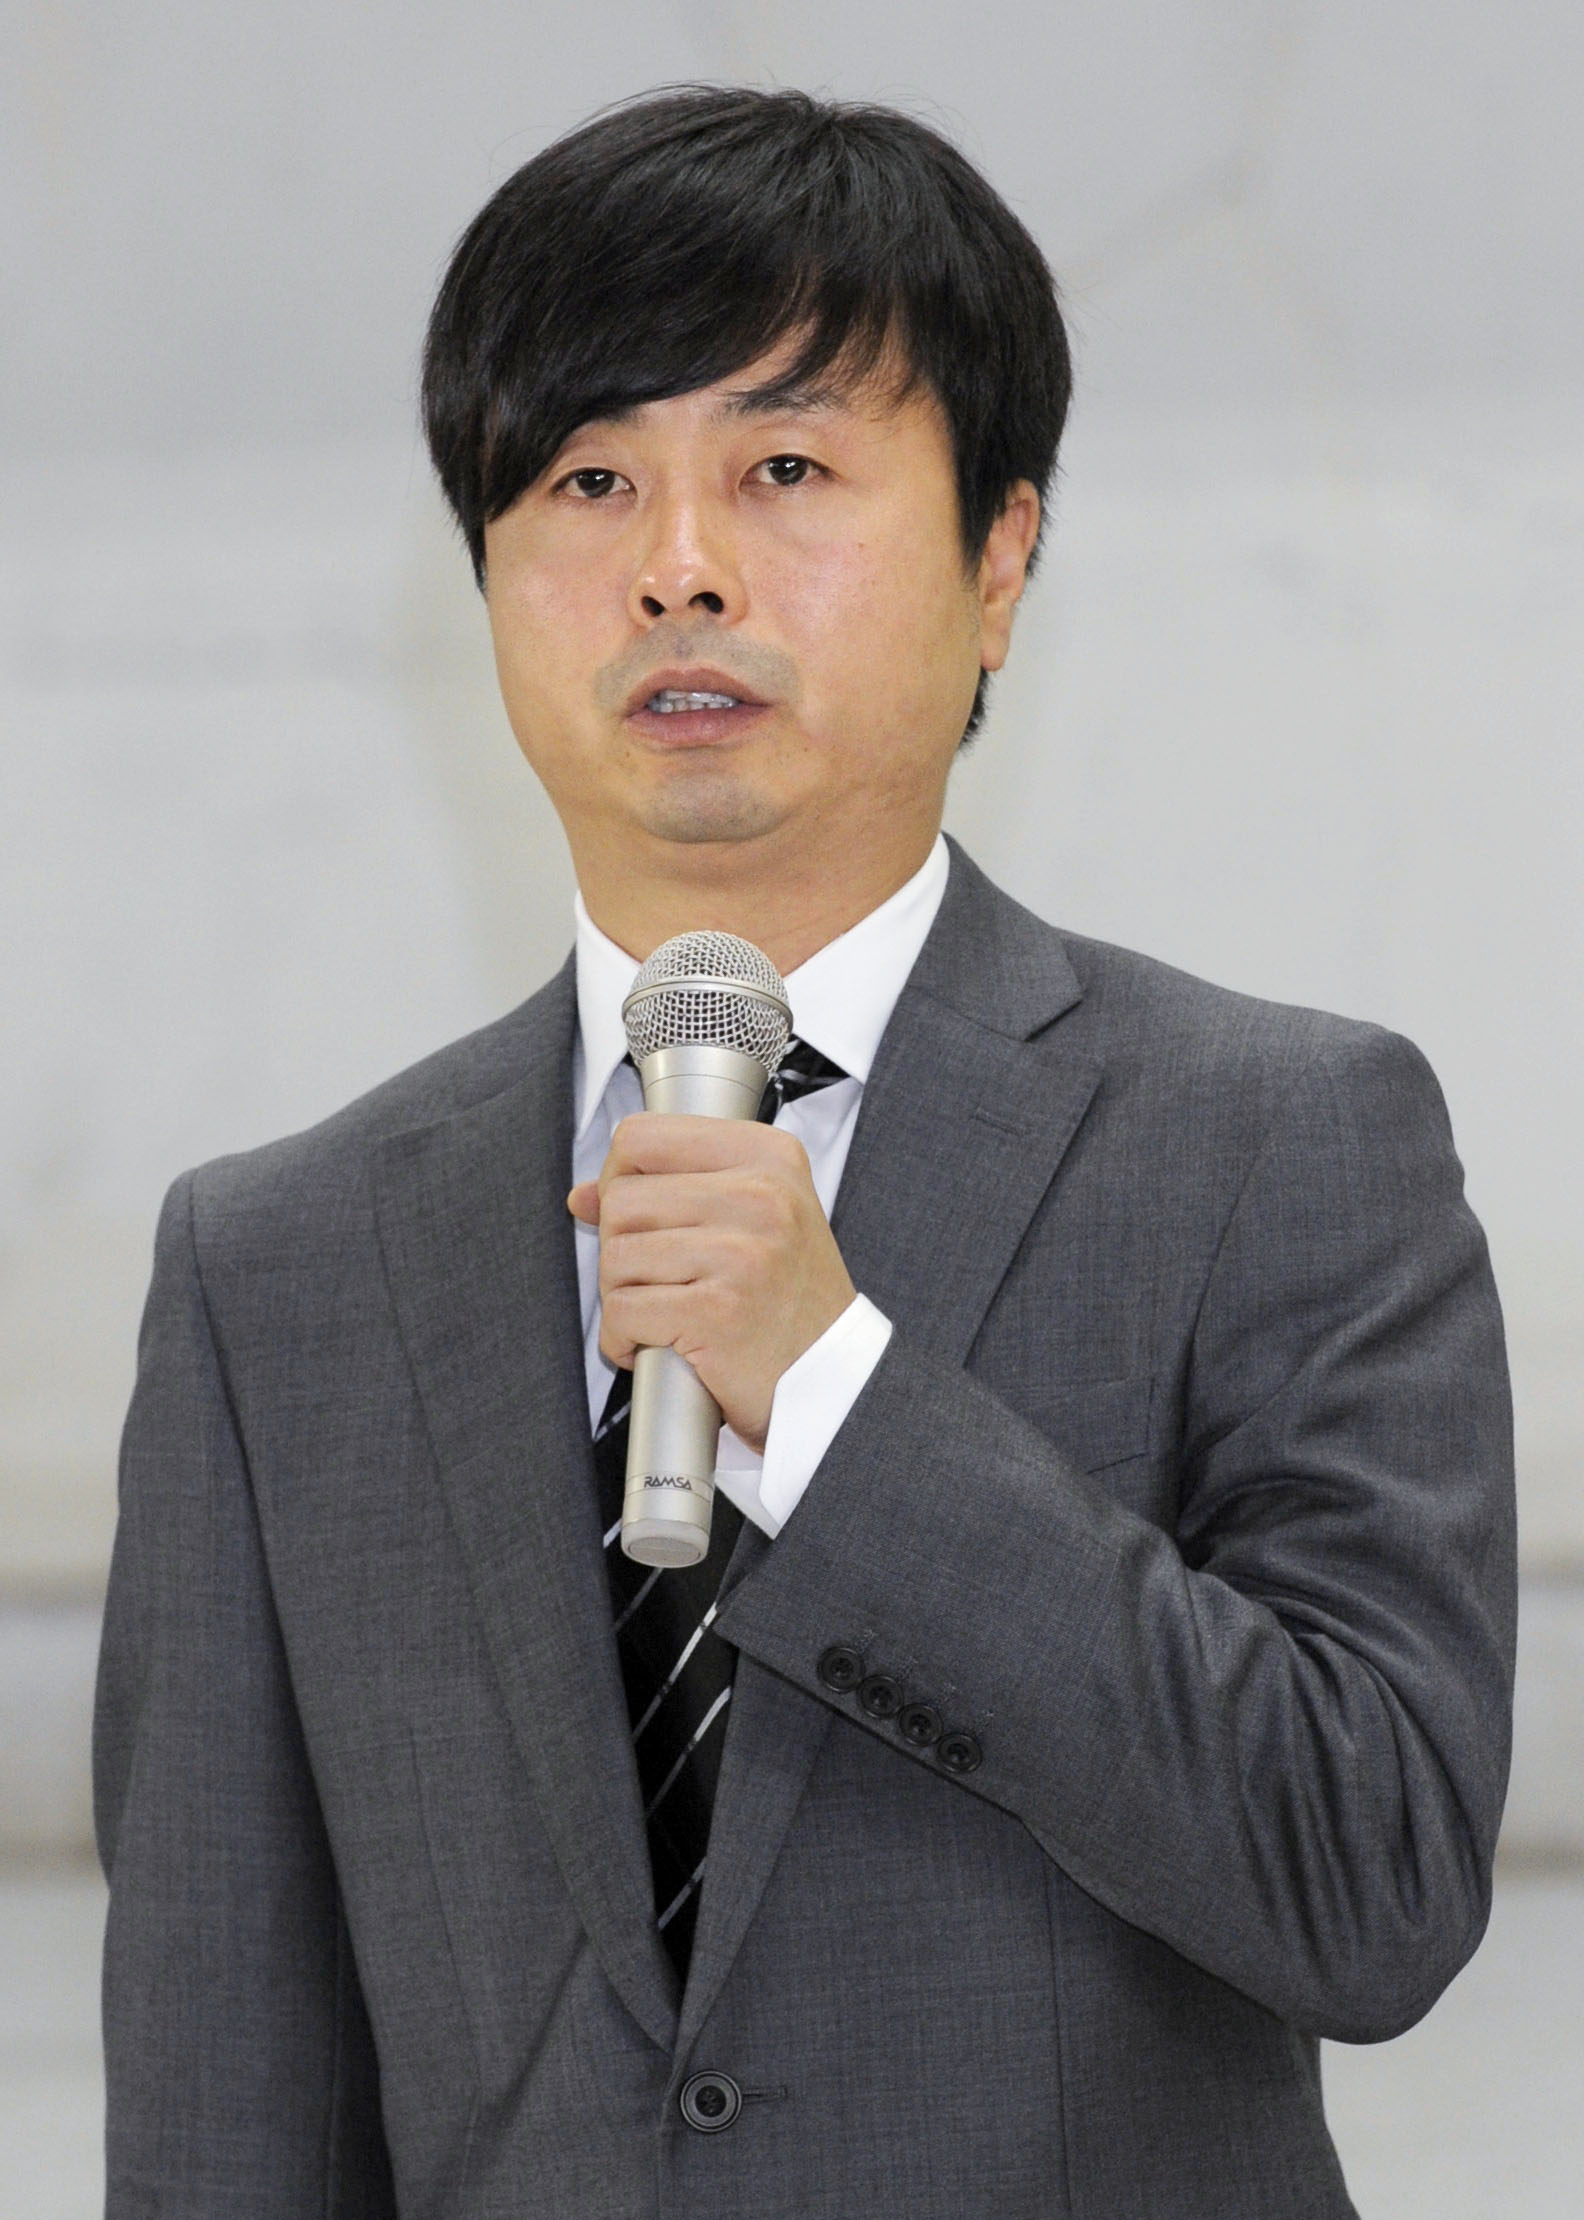 Farewell: Comedian Junichi Komoto apologizes for allowing his mother to collect welfare payments despite the fact that he was making a decent salary himself. | KYODO